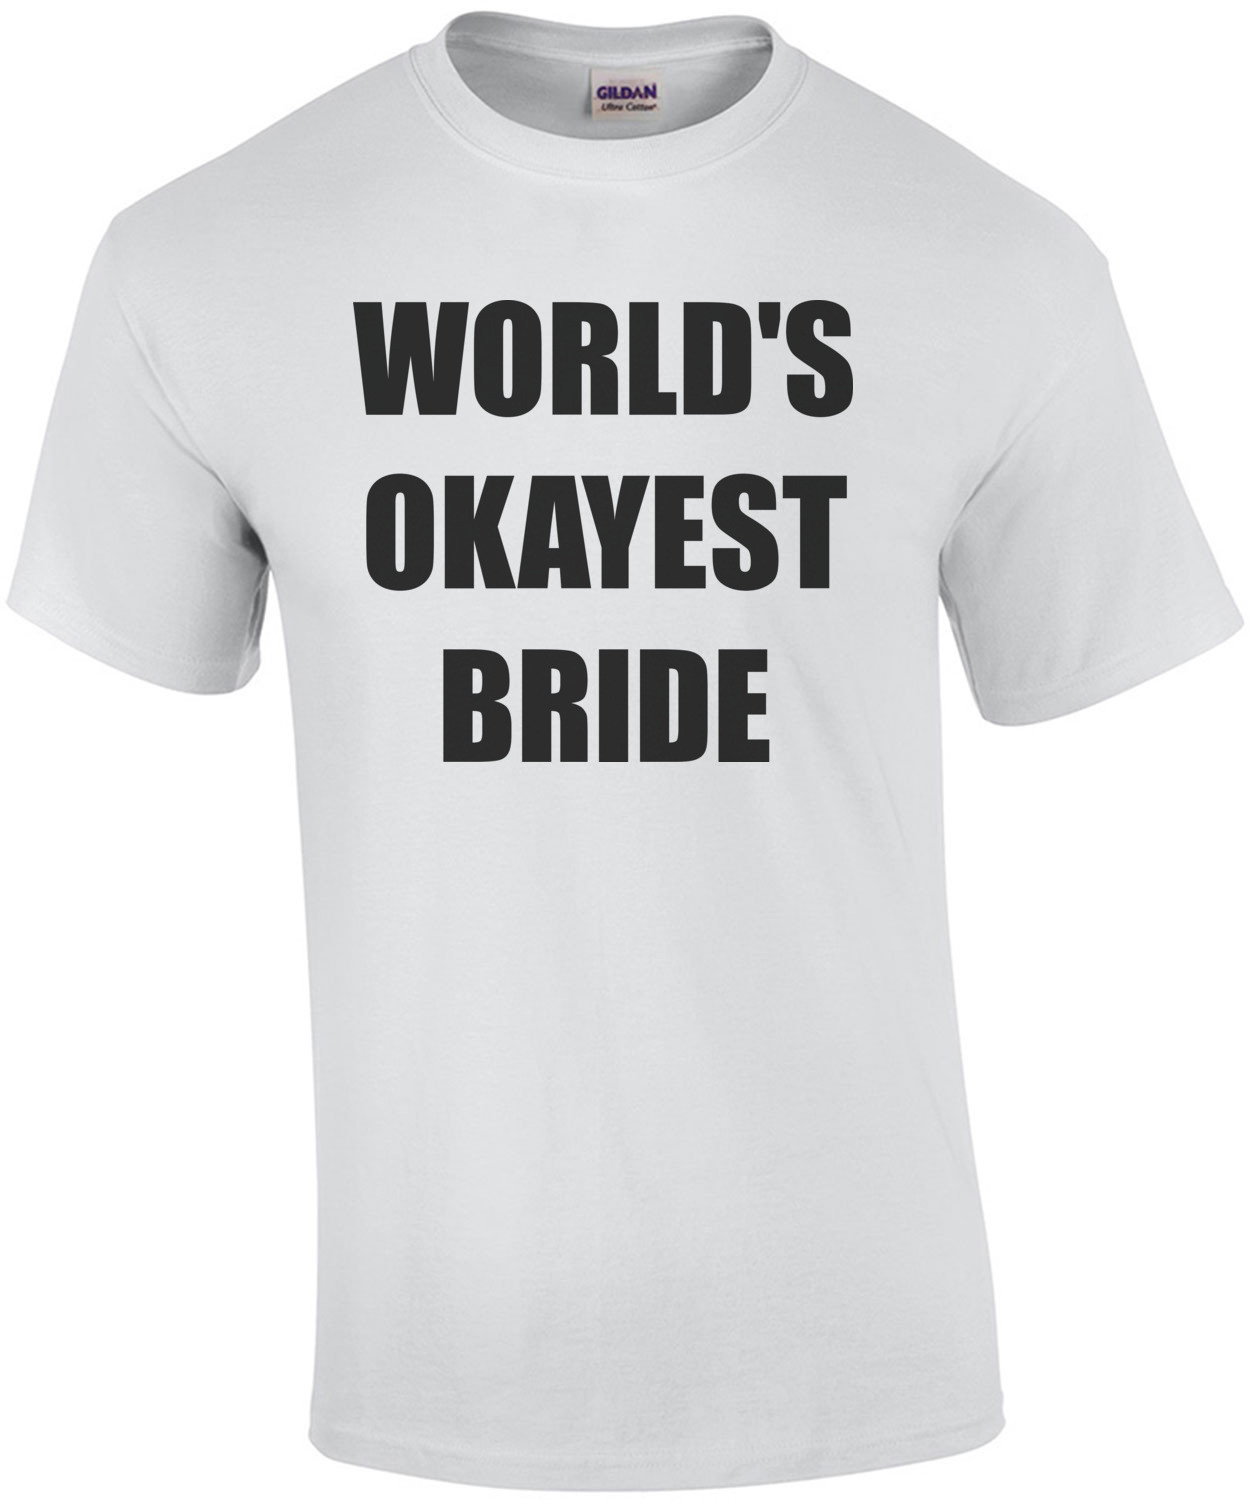 WORLD'S OKAYEST BRIDE Shirt